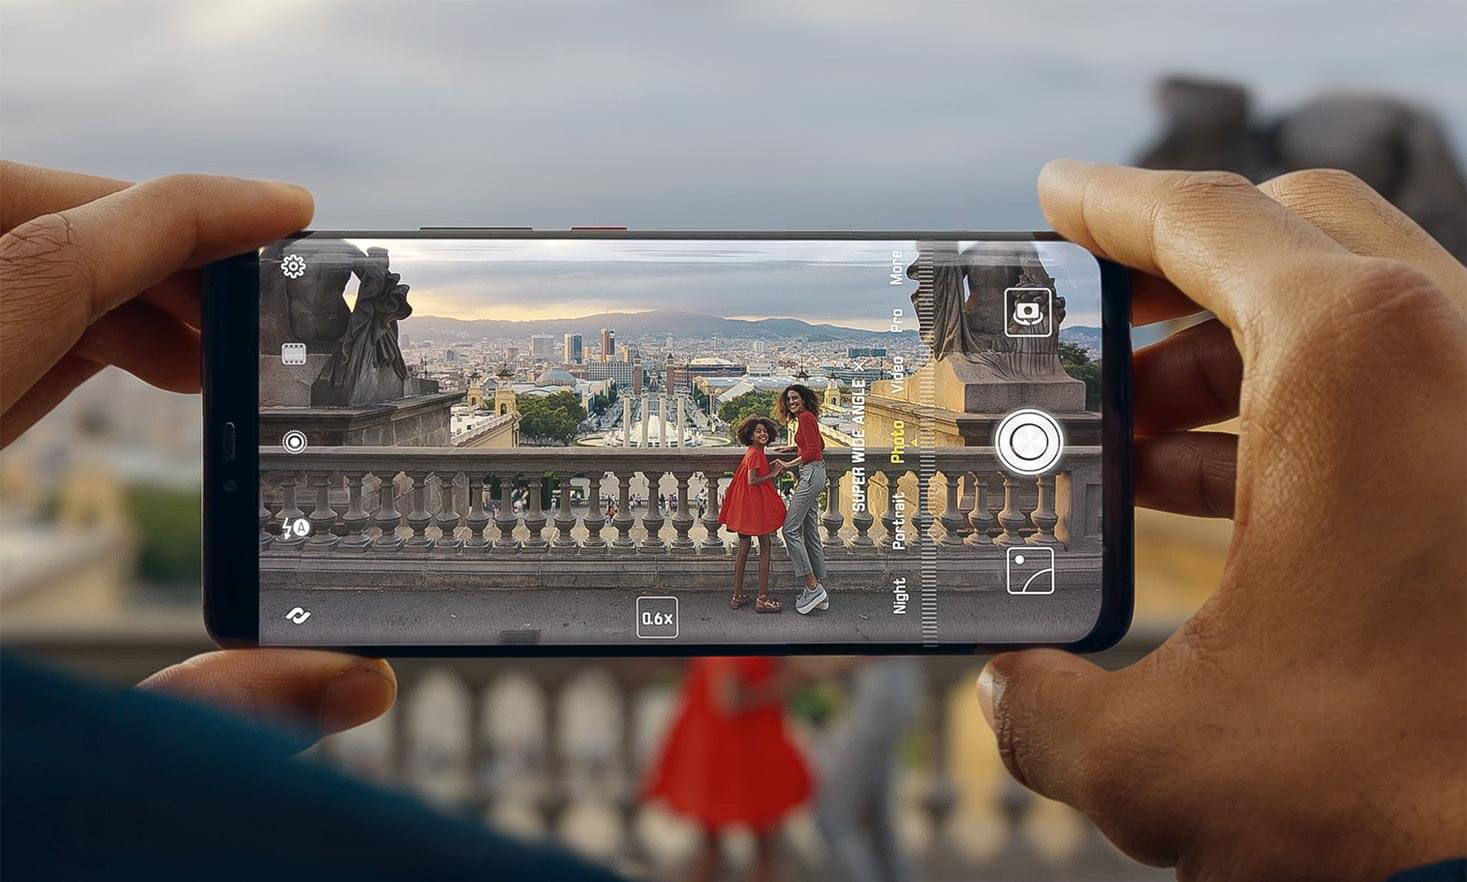 Huawei Mate 20 Pro The Beast With 3D Face Unlock, In-Display Fingerprint Scanner, 4,200mAh Battery, And More